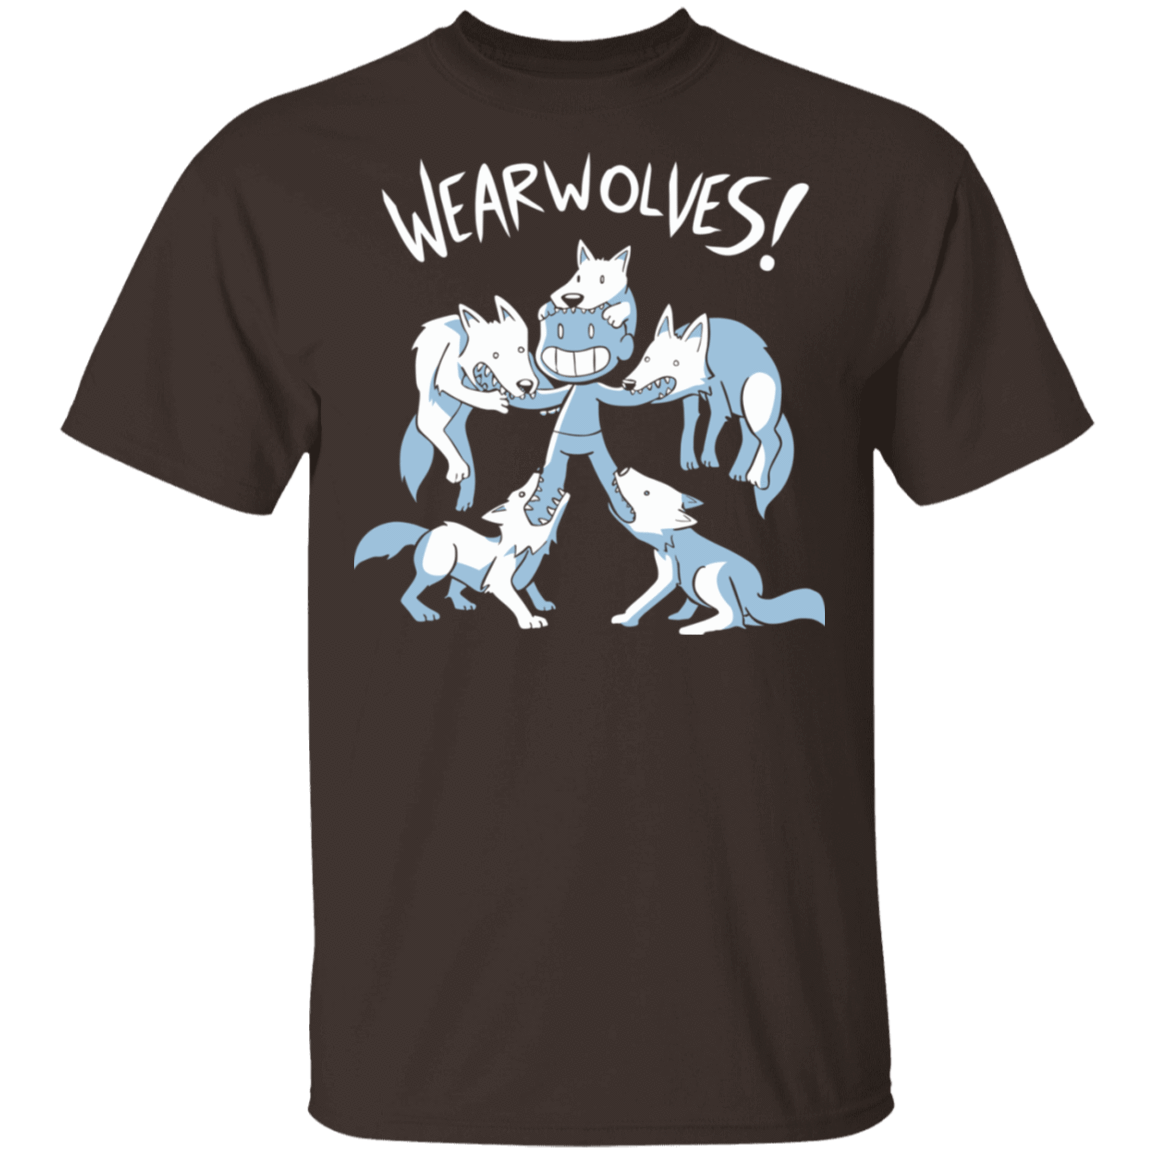 Wearwolves T-Shirts, Hoodies 22-2283-80162939-12087 - Tee Ript